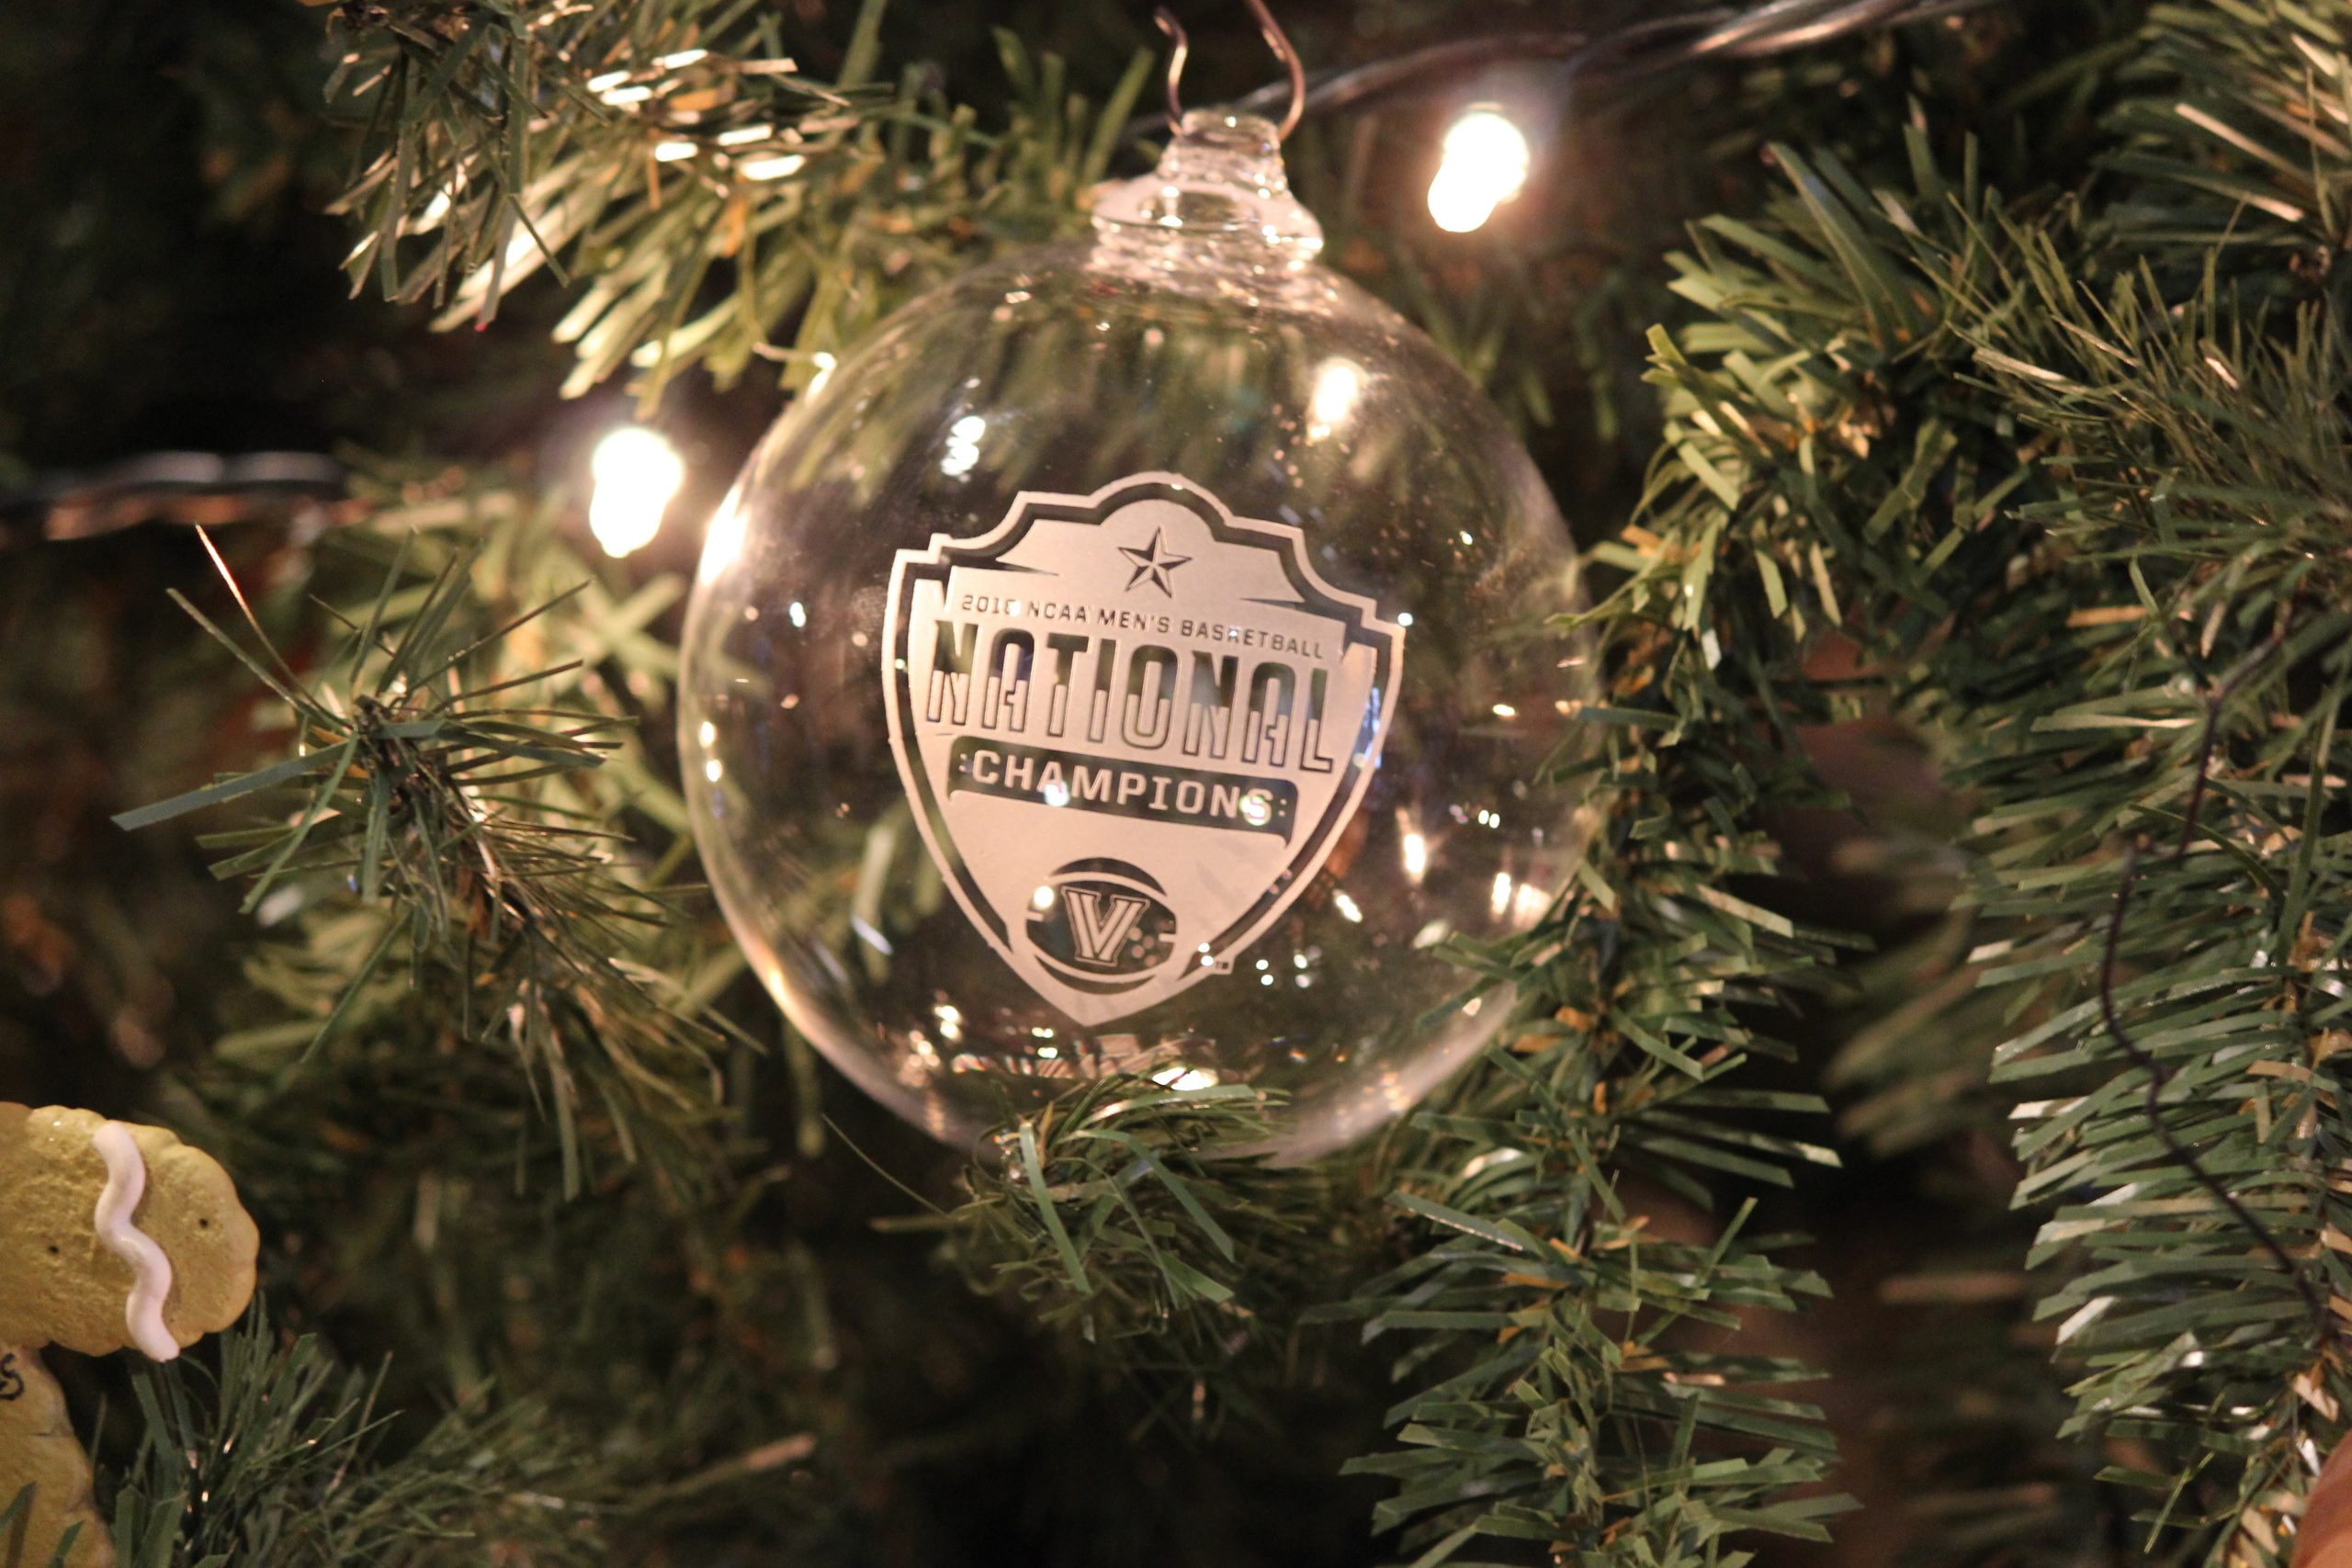 2018 NCAA championship ornament